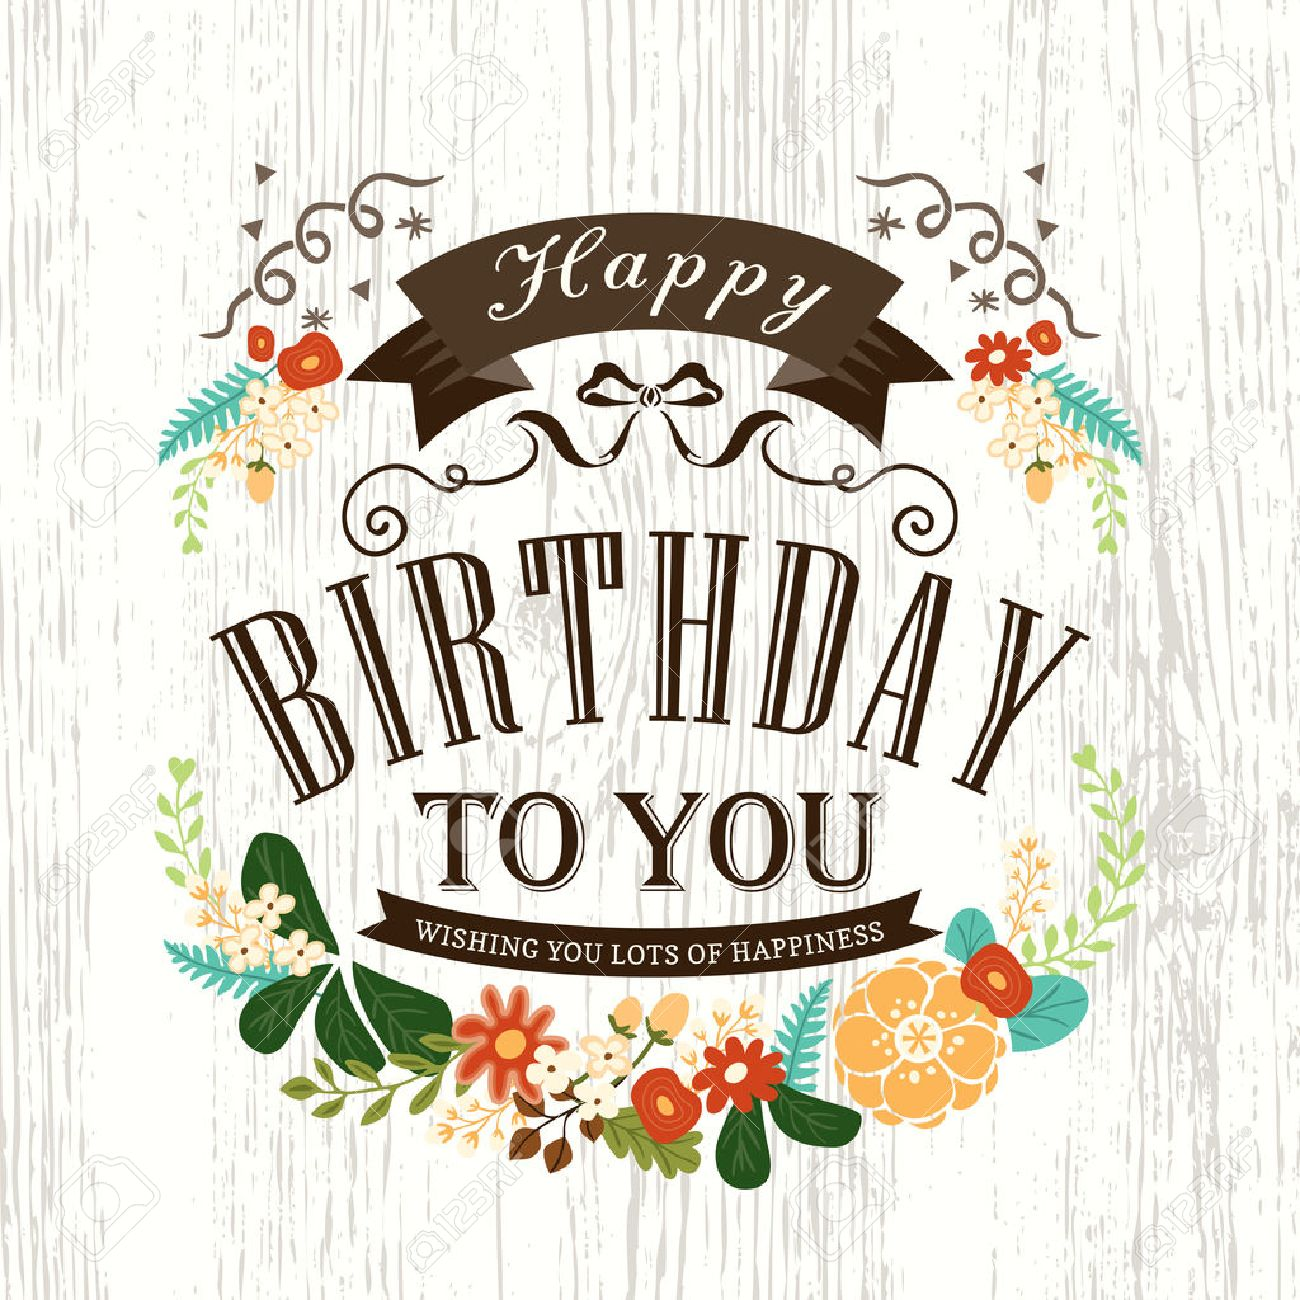 Cute Happy birthday card design with flowers ribbon banner and frame - 36279636